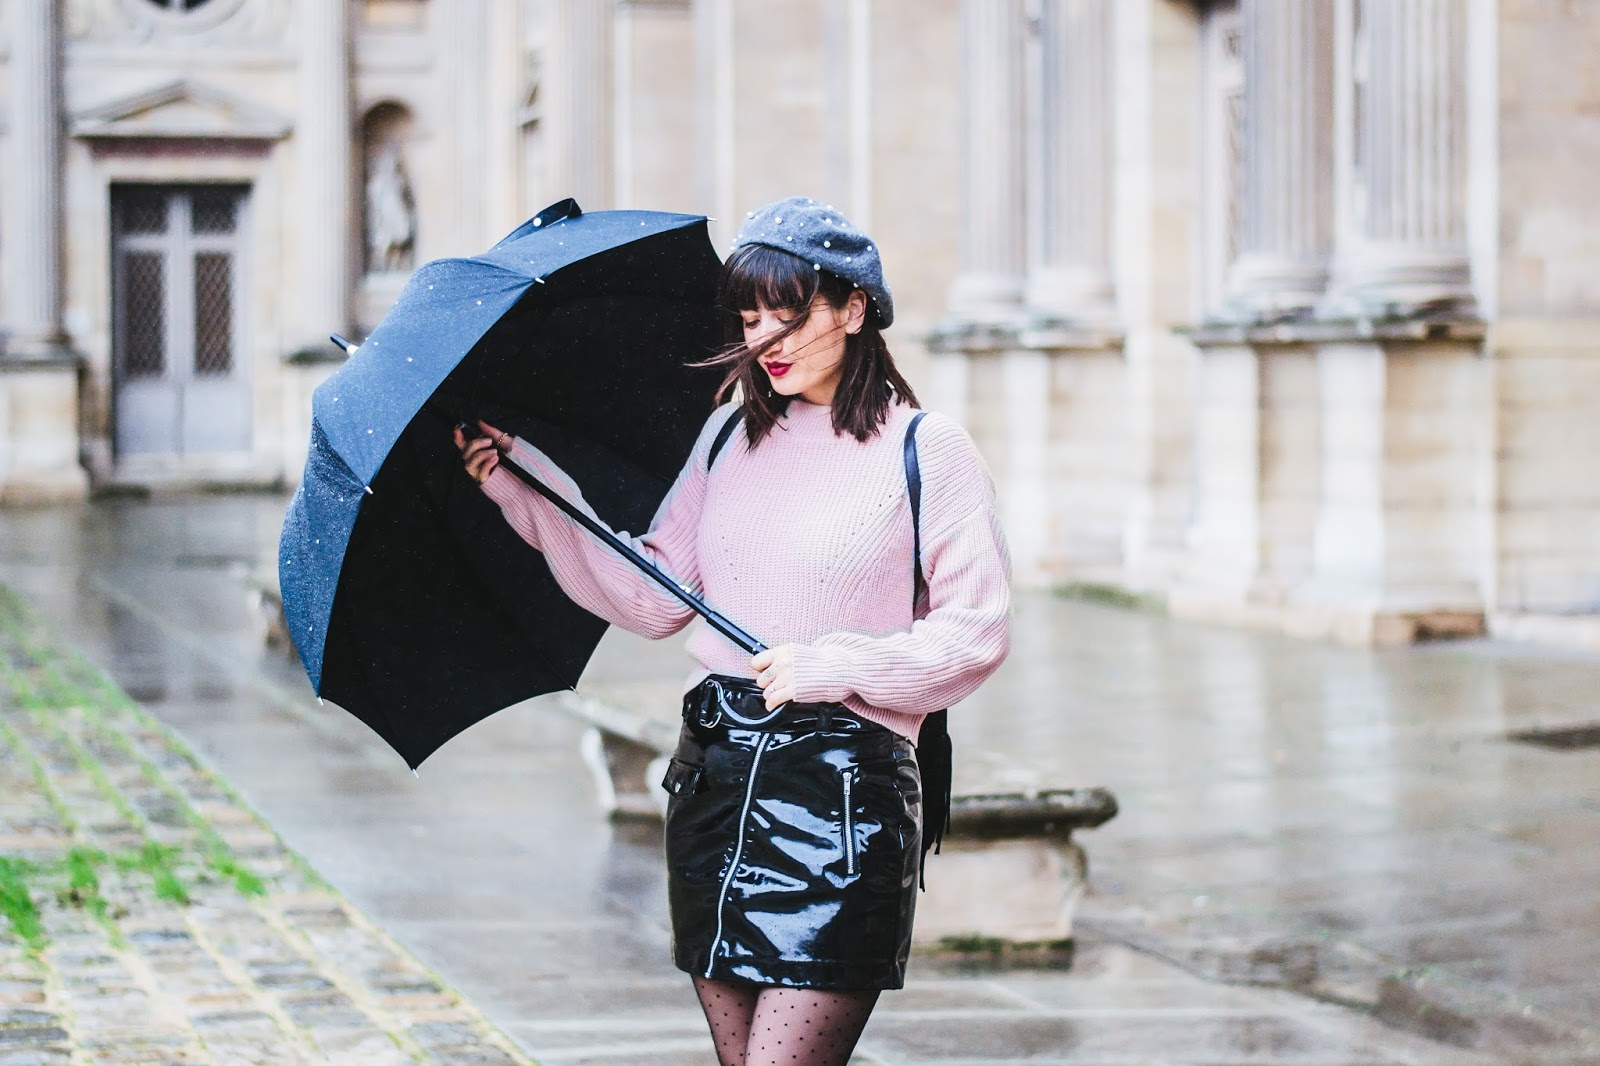 paris-mode-blogger-chicparisianfashion-streetstyle-lancaster-winterlook